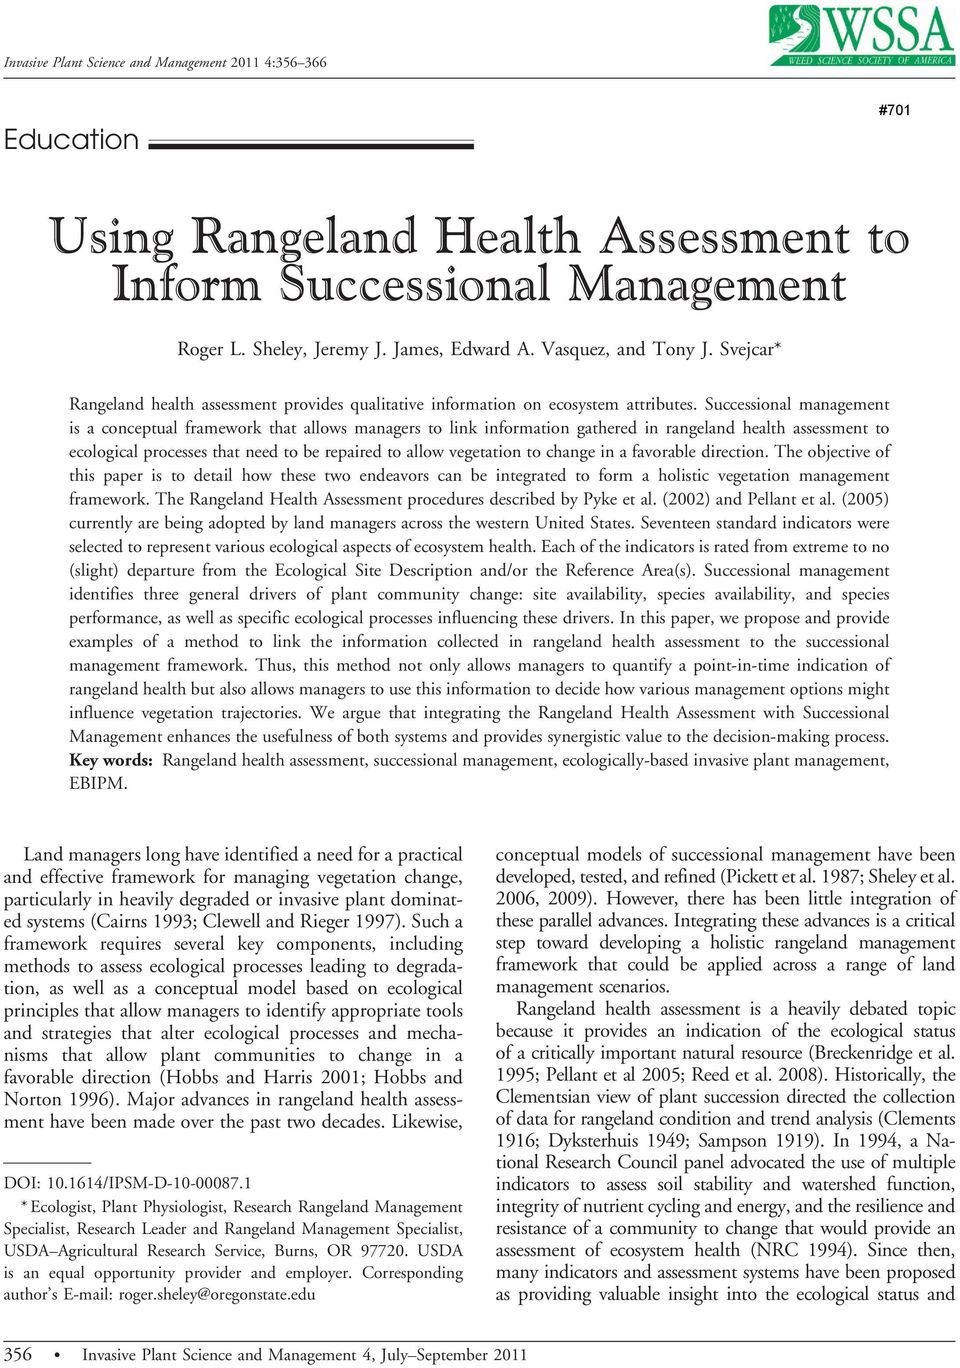 Successional management is a conceptual framework that allows managers to link information gathered in rangeland health assessment to ecological processes that need to be repaired to allow vegetation